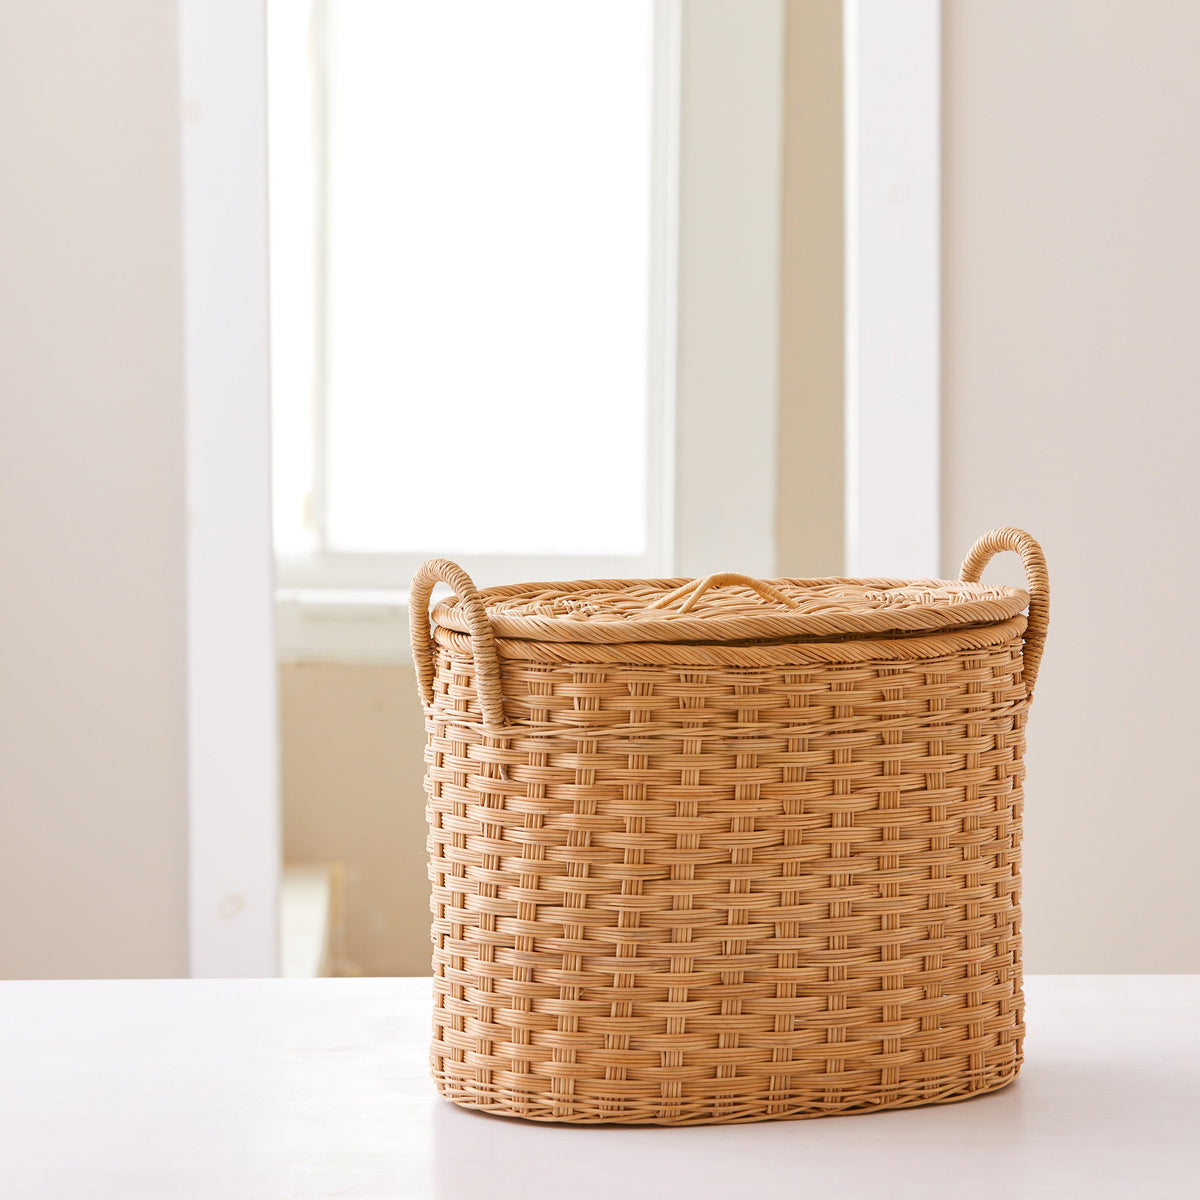 Oval rattan storage basket. Unique storage baskets with lids and handles. 5 sizes. Small basket shown. Great basket for storage. XL, L, M, S, XS.